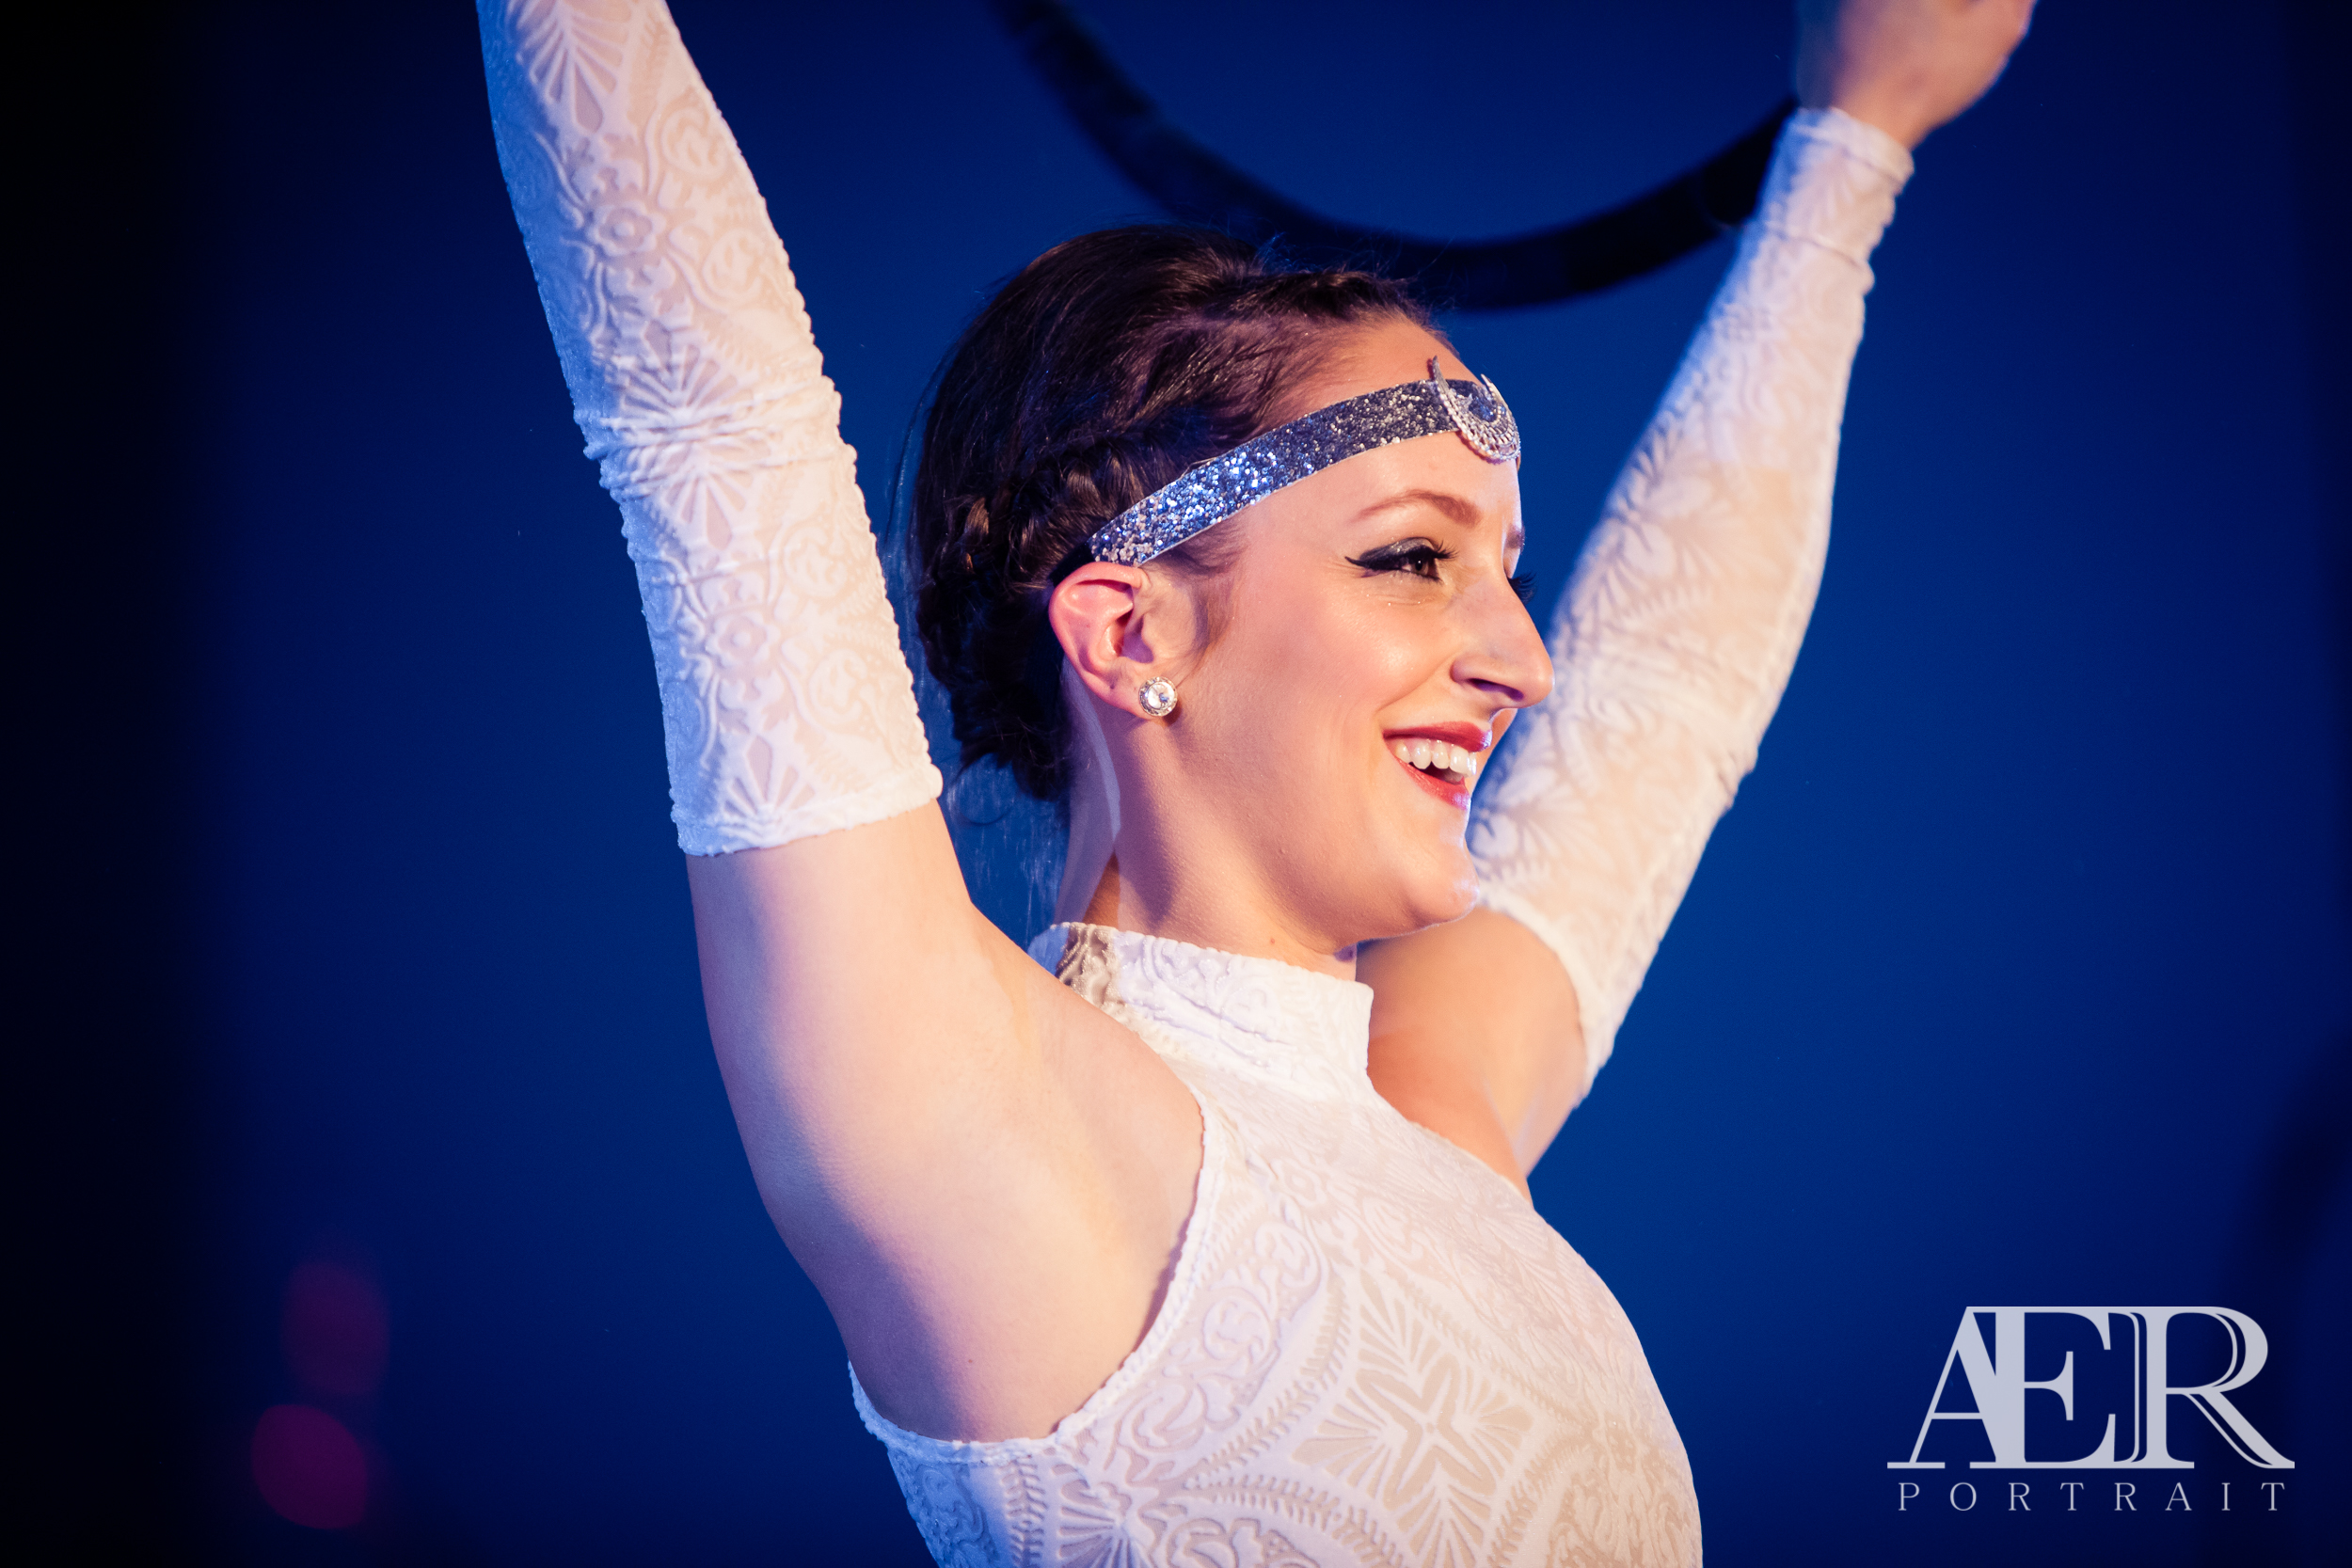 Louisville Performing Arts Photography - Turners Circus - AER Portrait 12